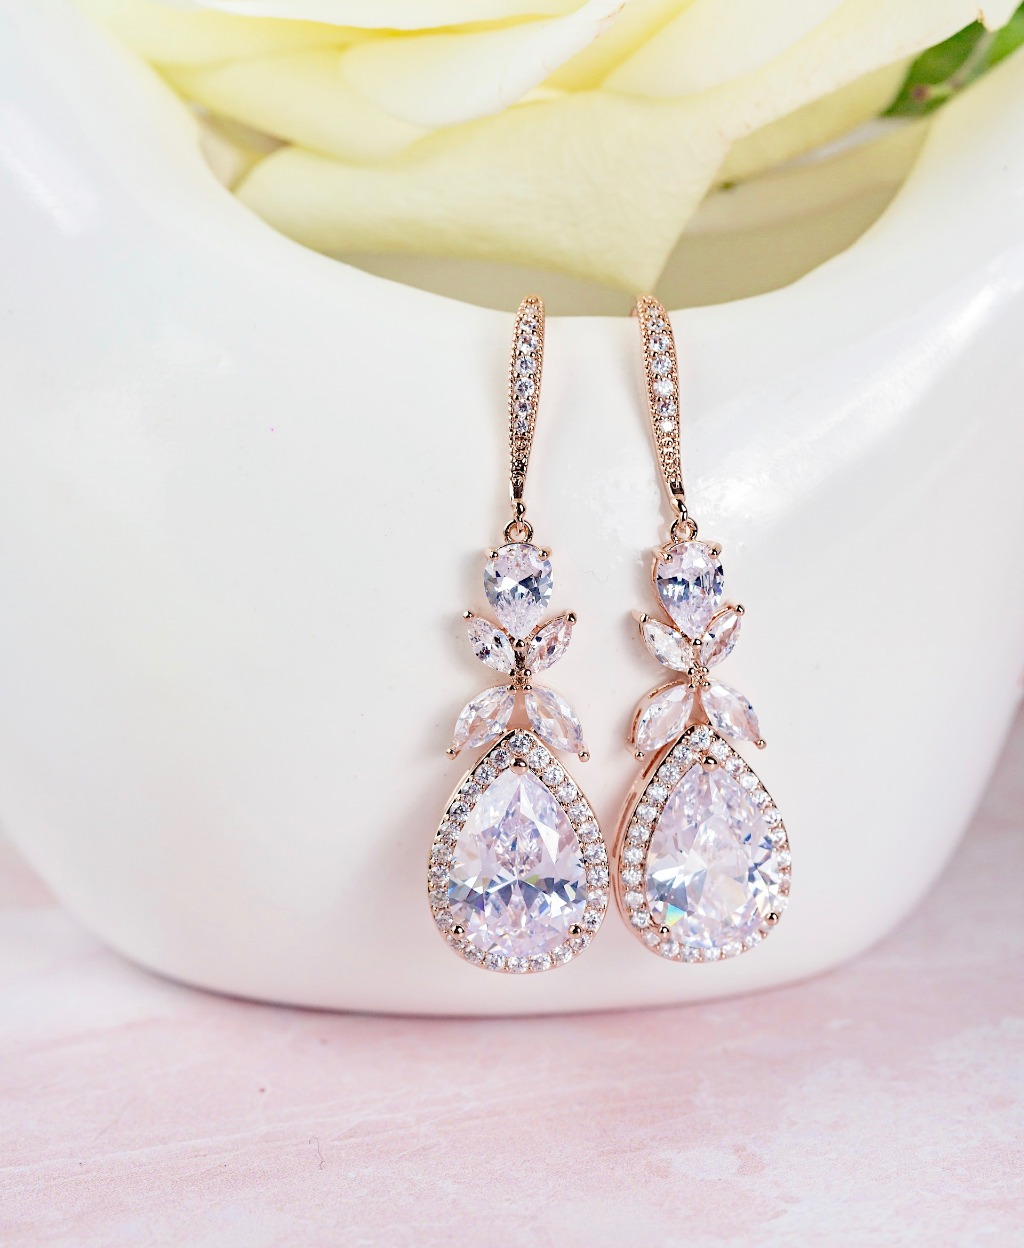 The Isabella Bridal Earrings are a classic teardrop wedding earring available in rose gold and silver. You'll feel like royalty in